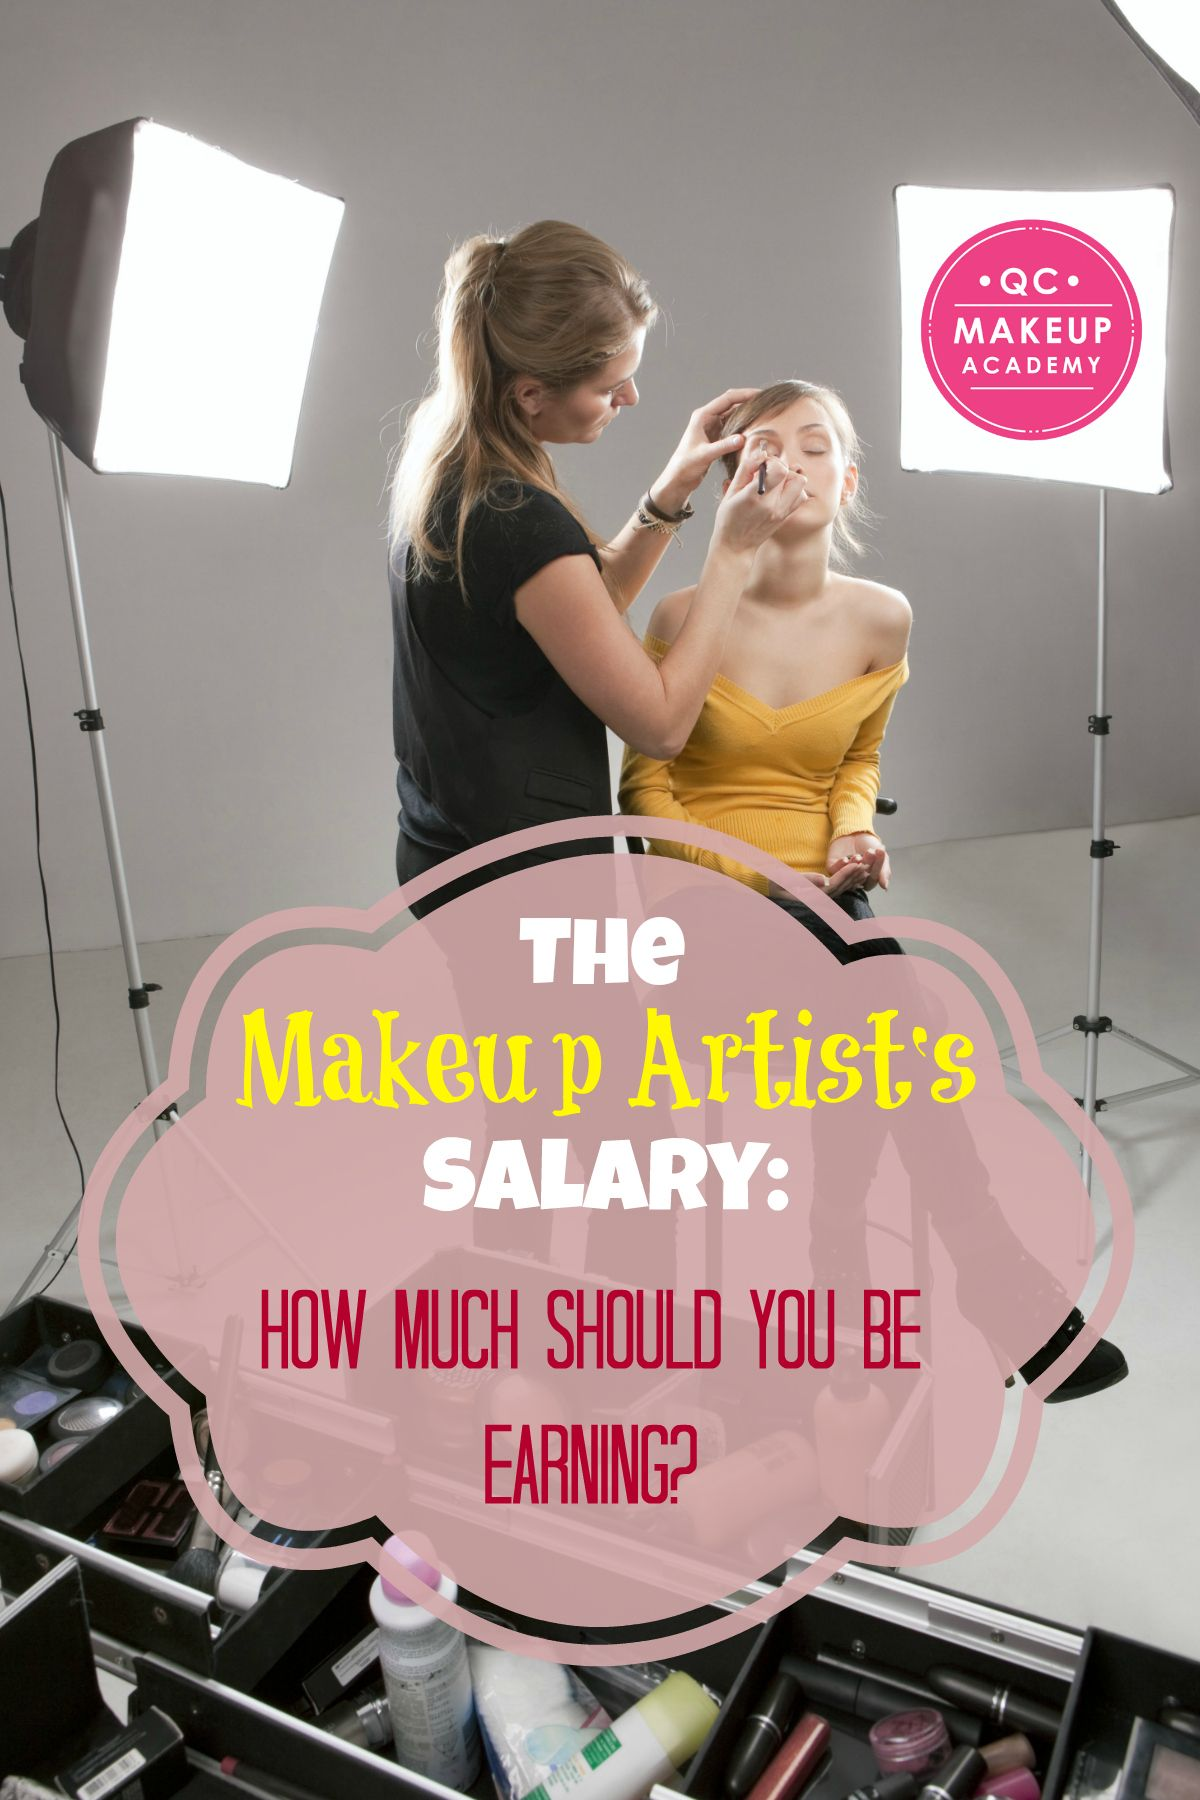 The pay range for an mua is wide, and dependent on